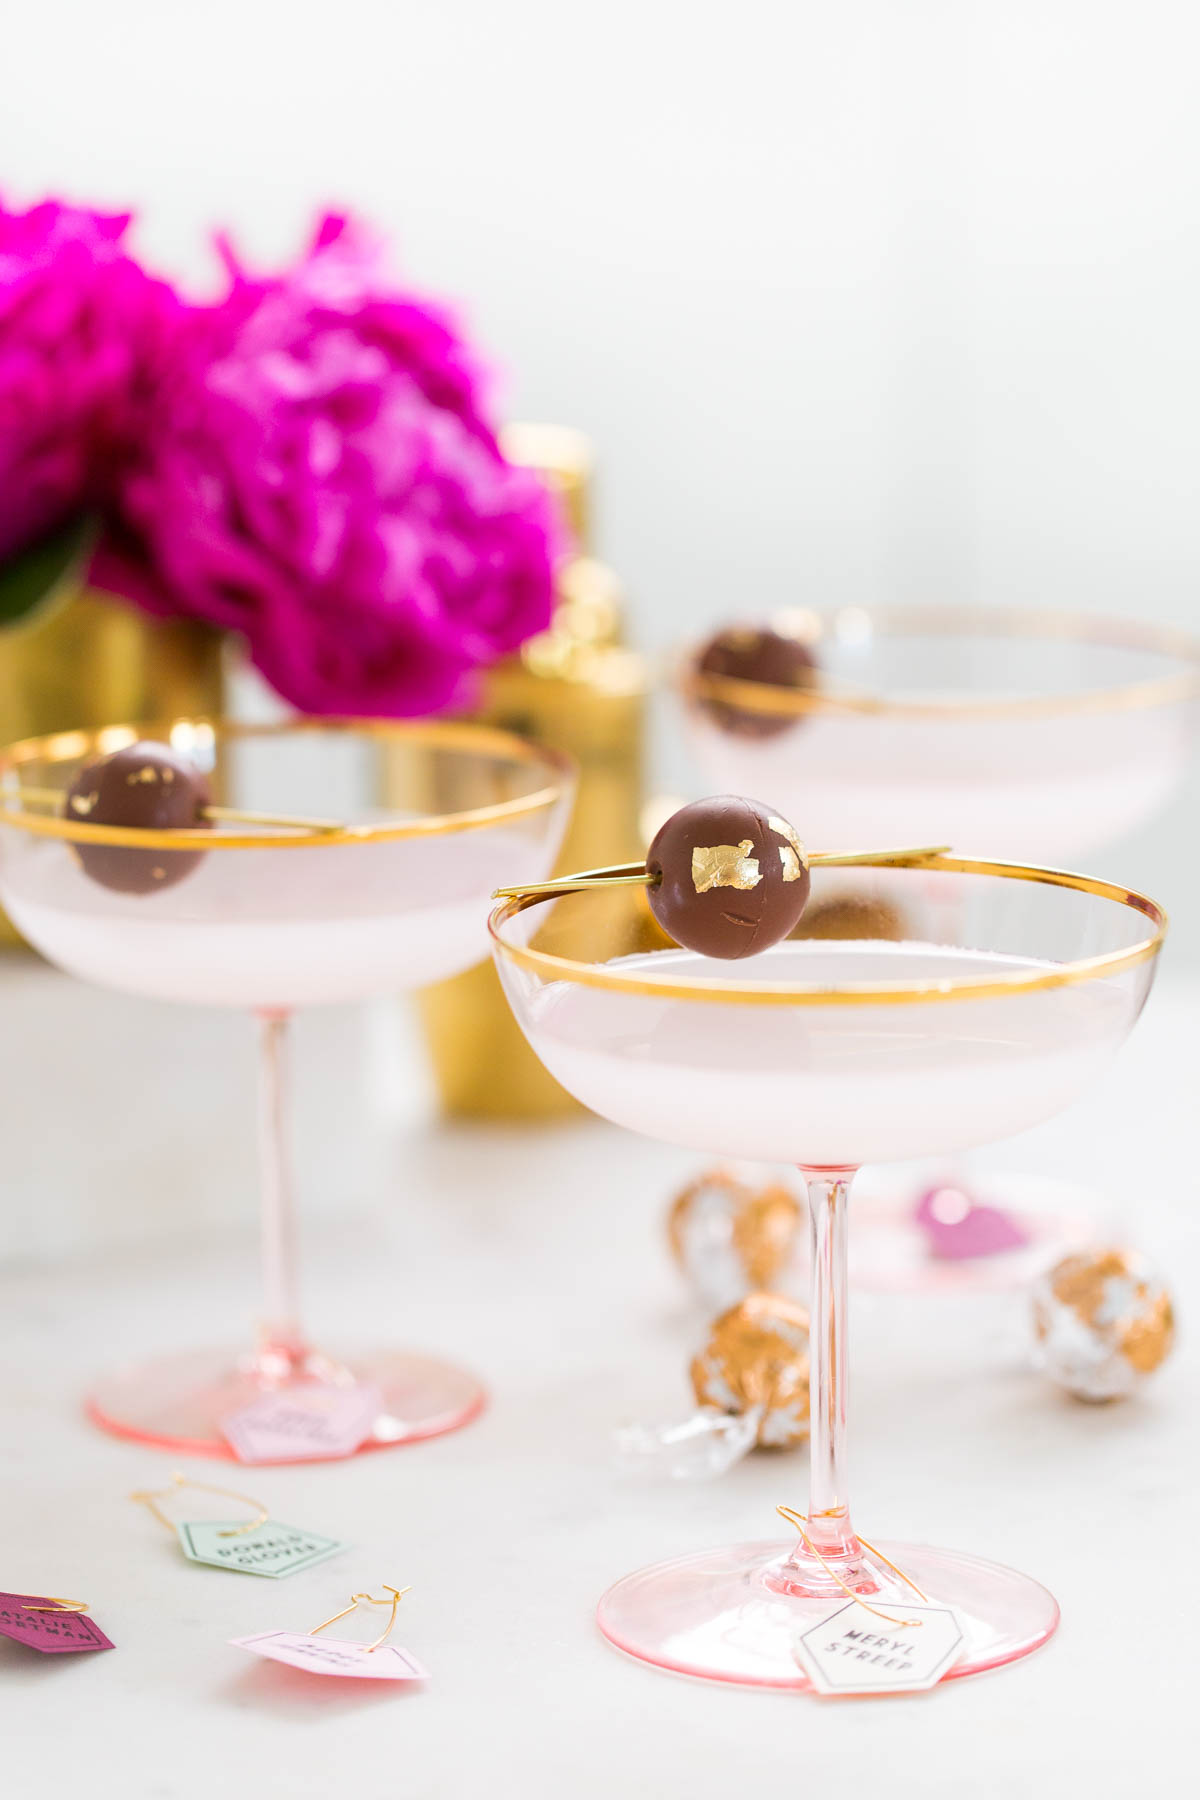 Printable DIY Golden Globes Drink Tags with Lindt Chocolate - by lifestyle blogger Ashley Rose of Sugar & Cloth in Houston, Texas